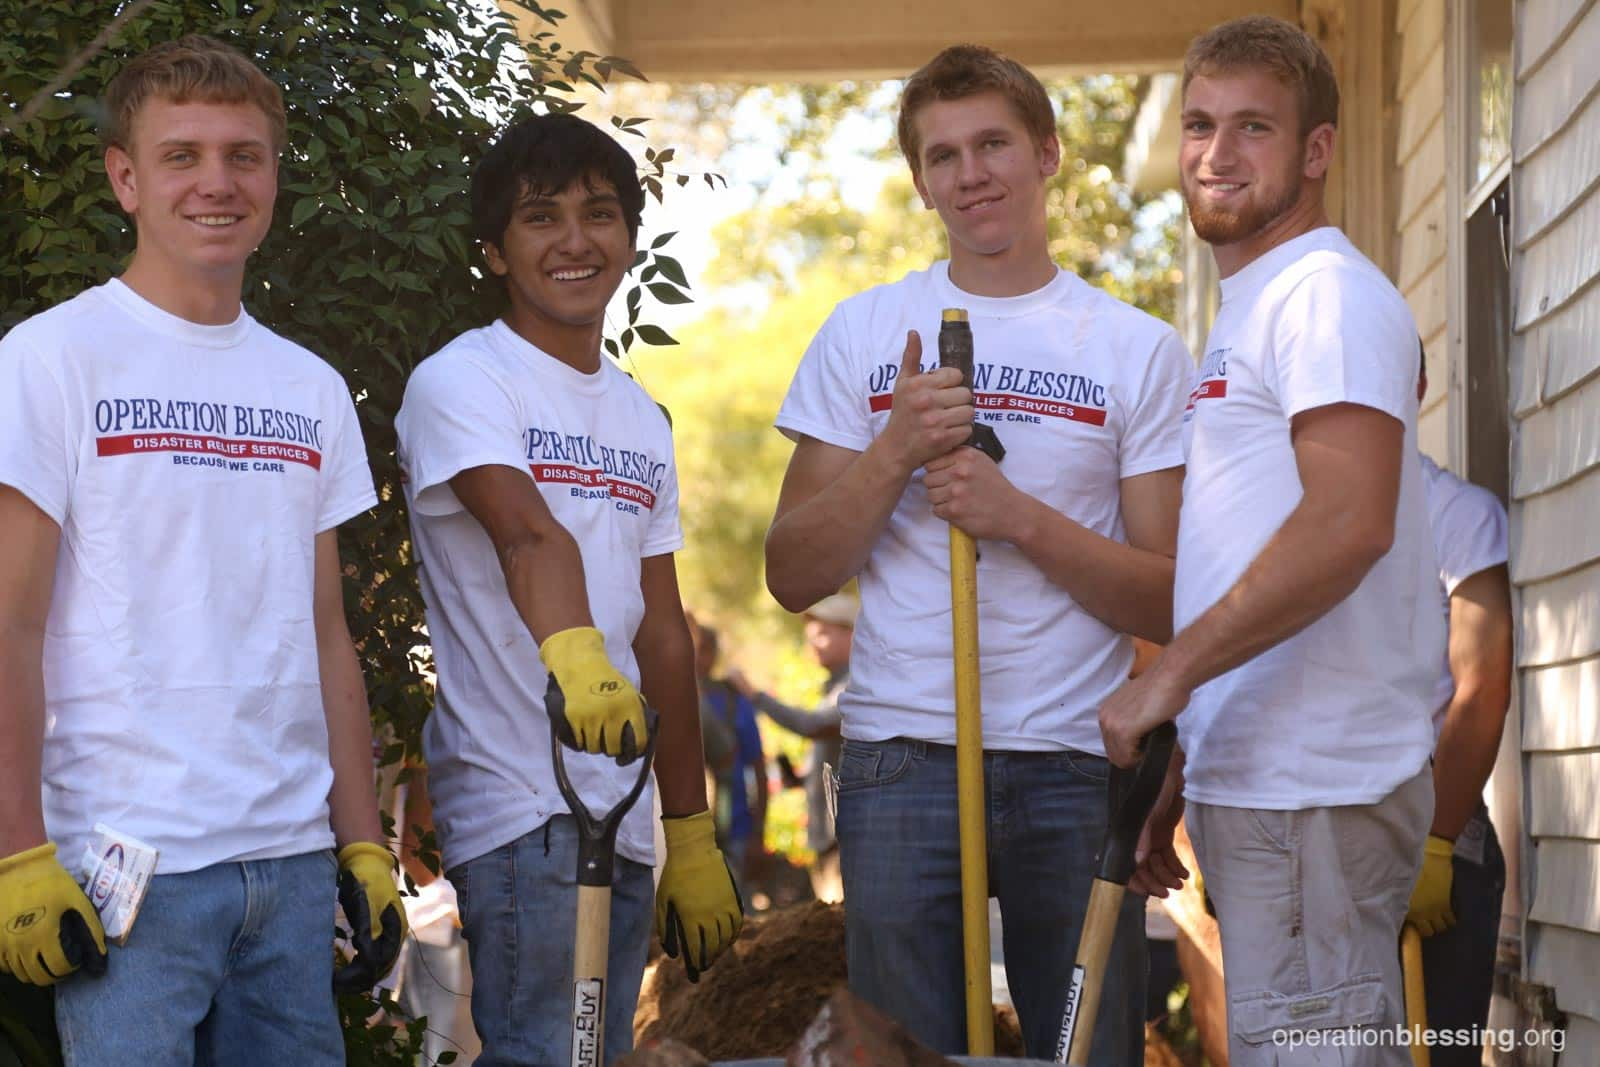 A team of Operation Blessing volunteers.